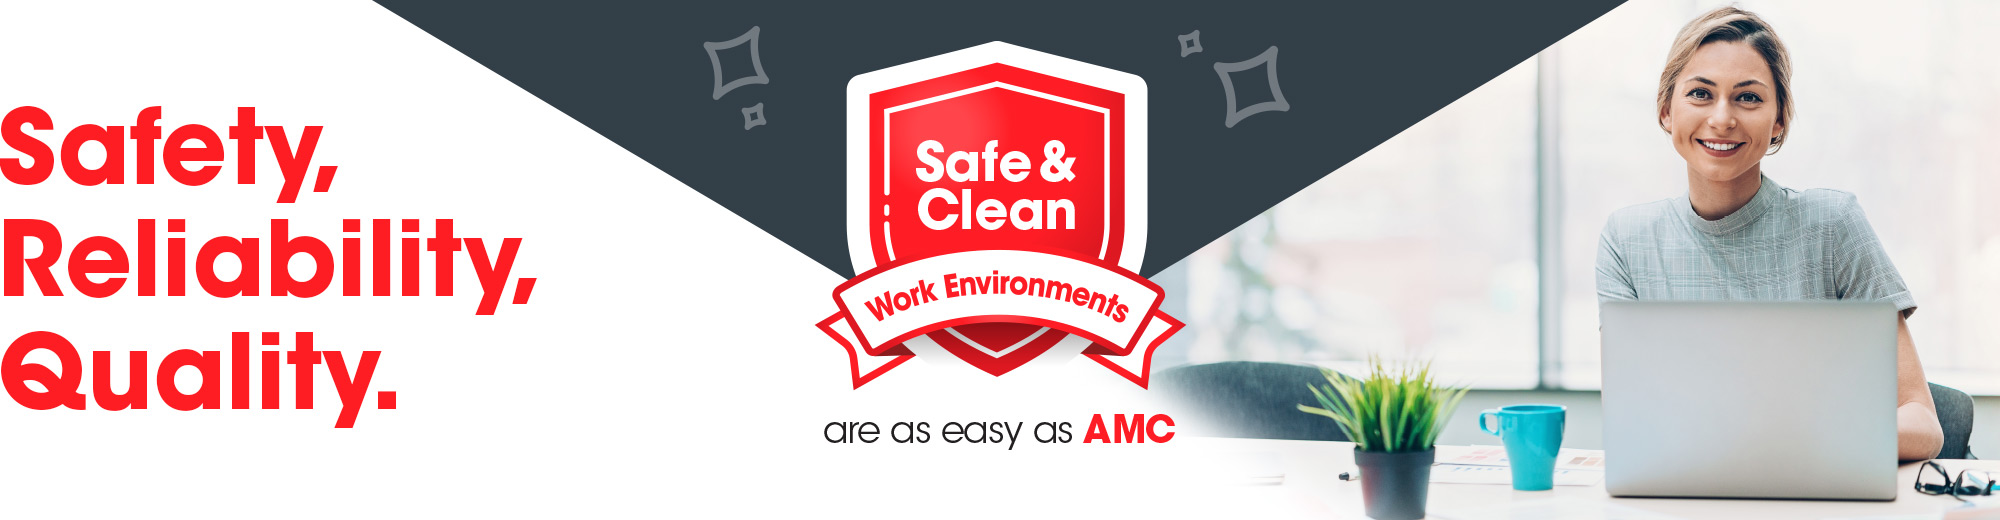 Safety, reliability, quality AMC Commercial Cleaning New Zealand